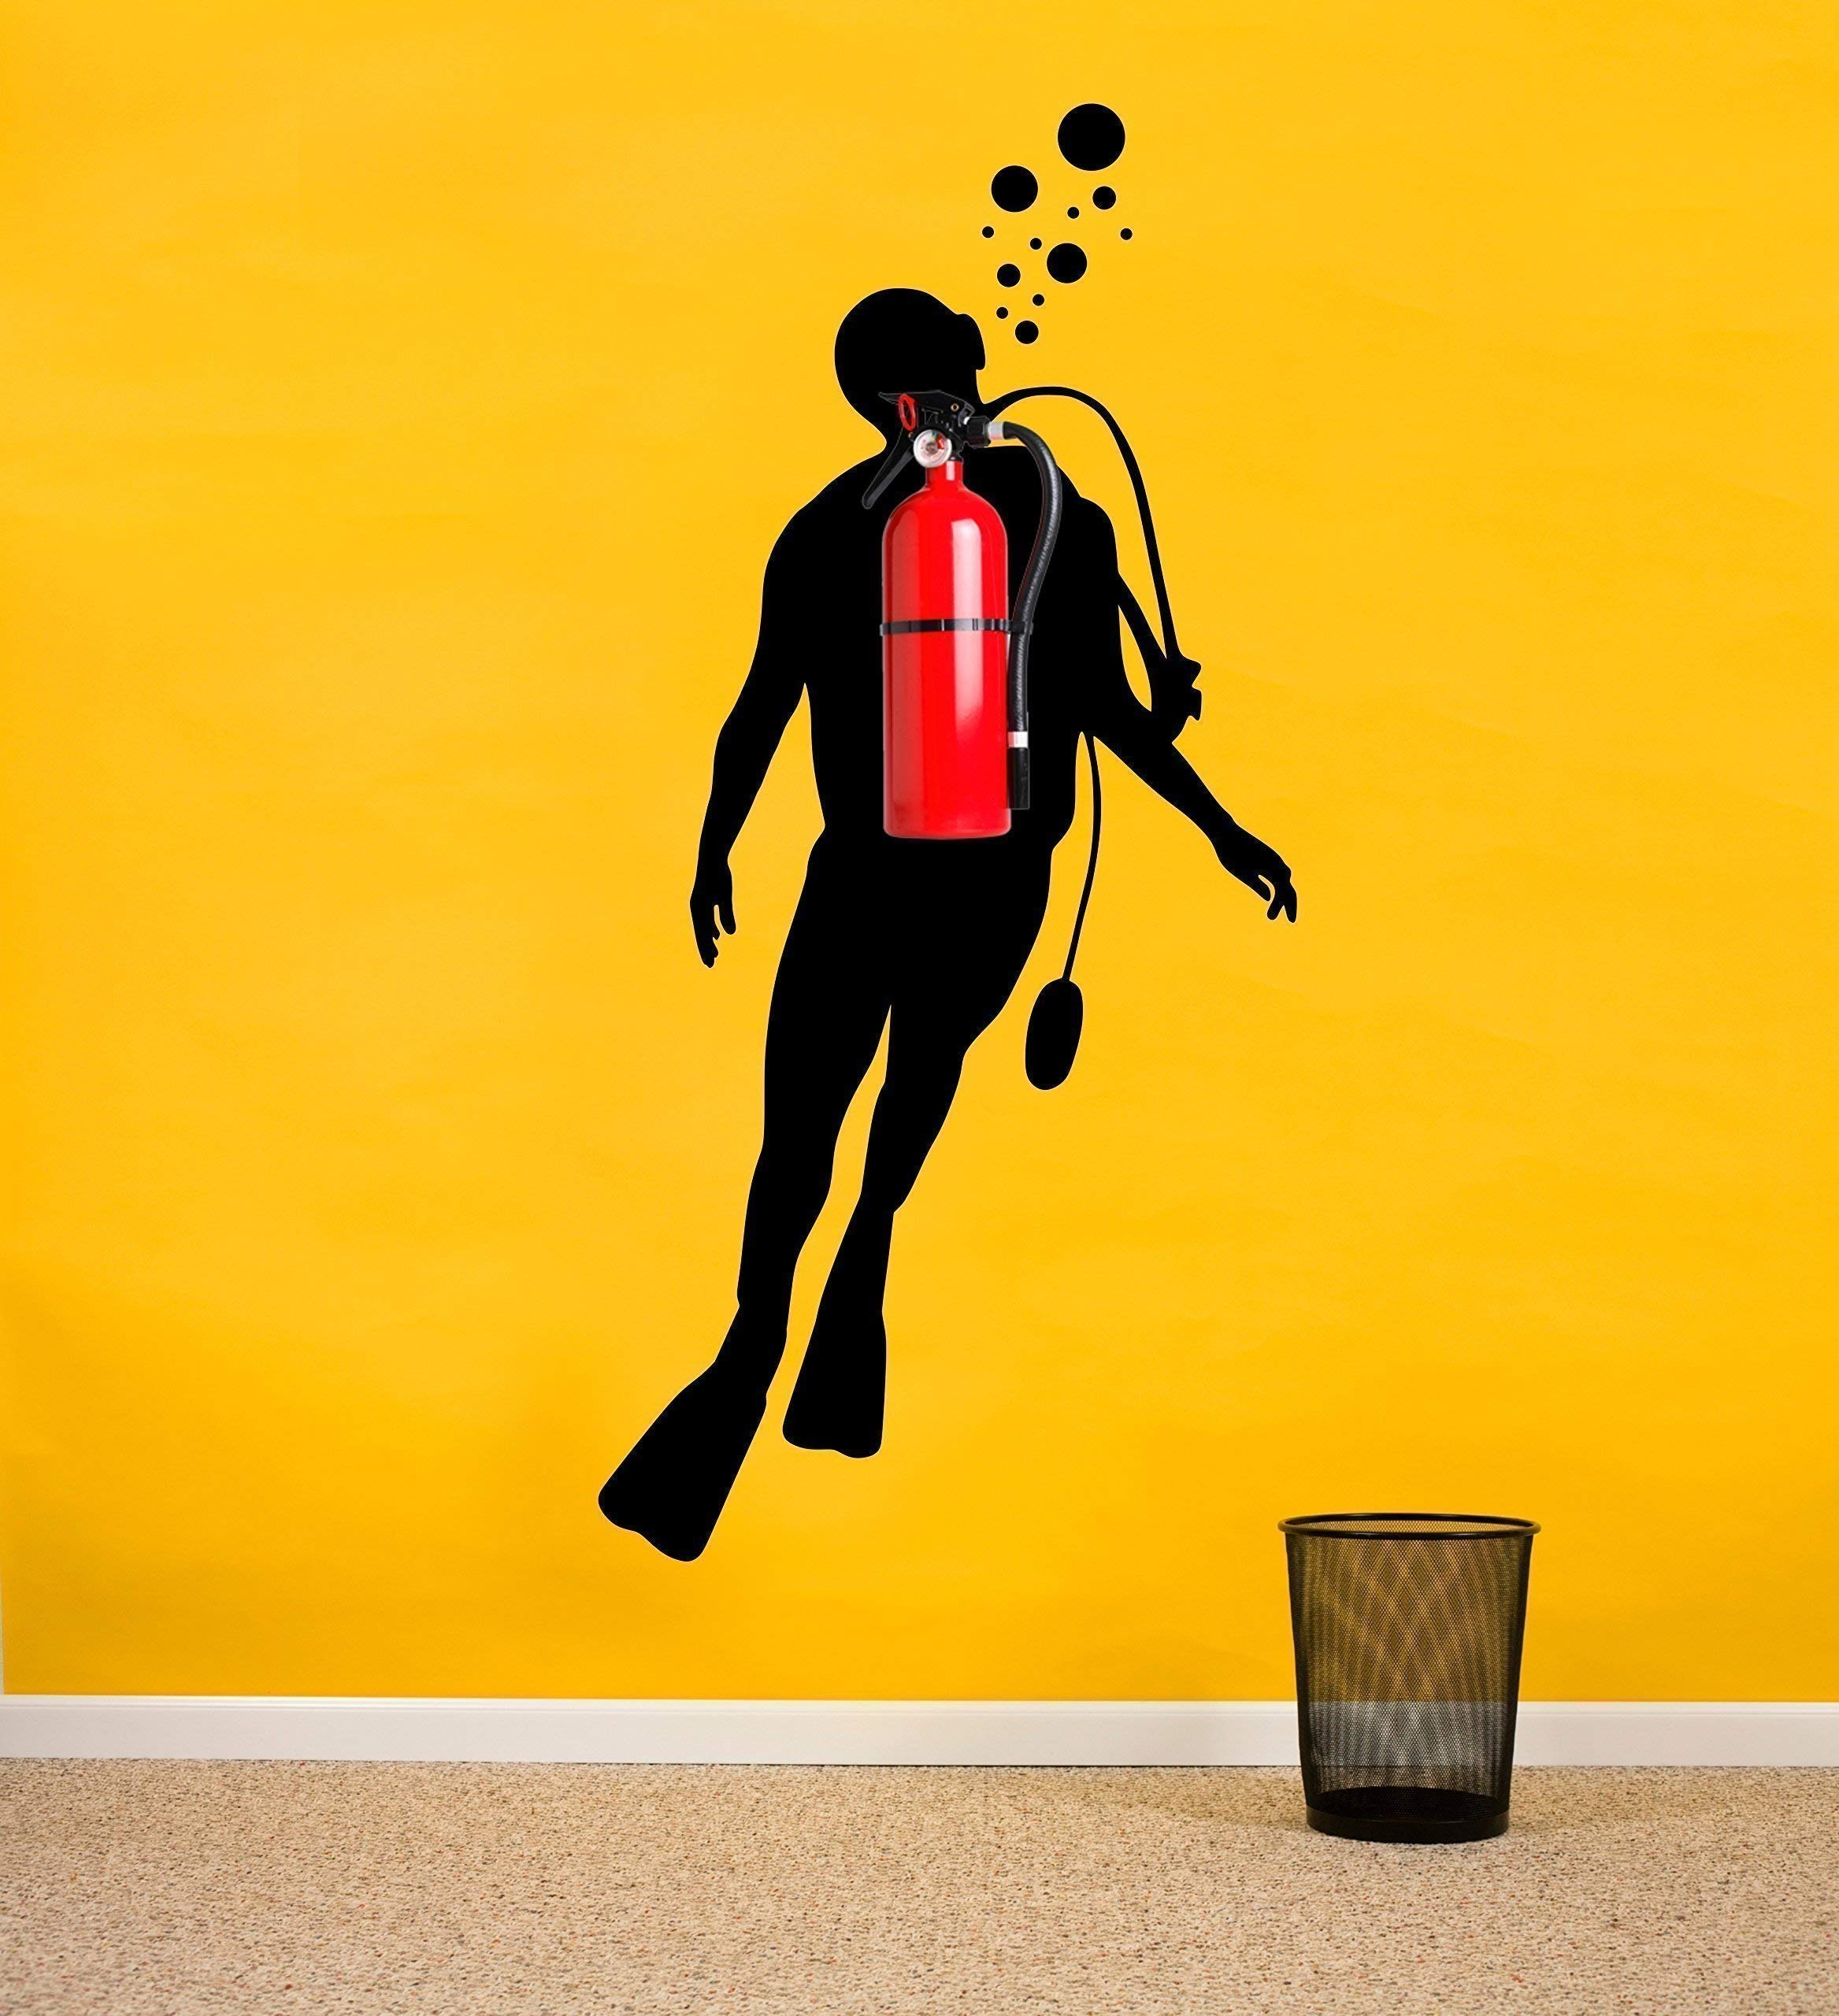 Wallency Scuba Diver Silhouette Wall Decal Fire Extinguishers - High Quality Removable Vinyl Sticker by Wallency